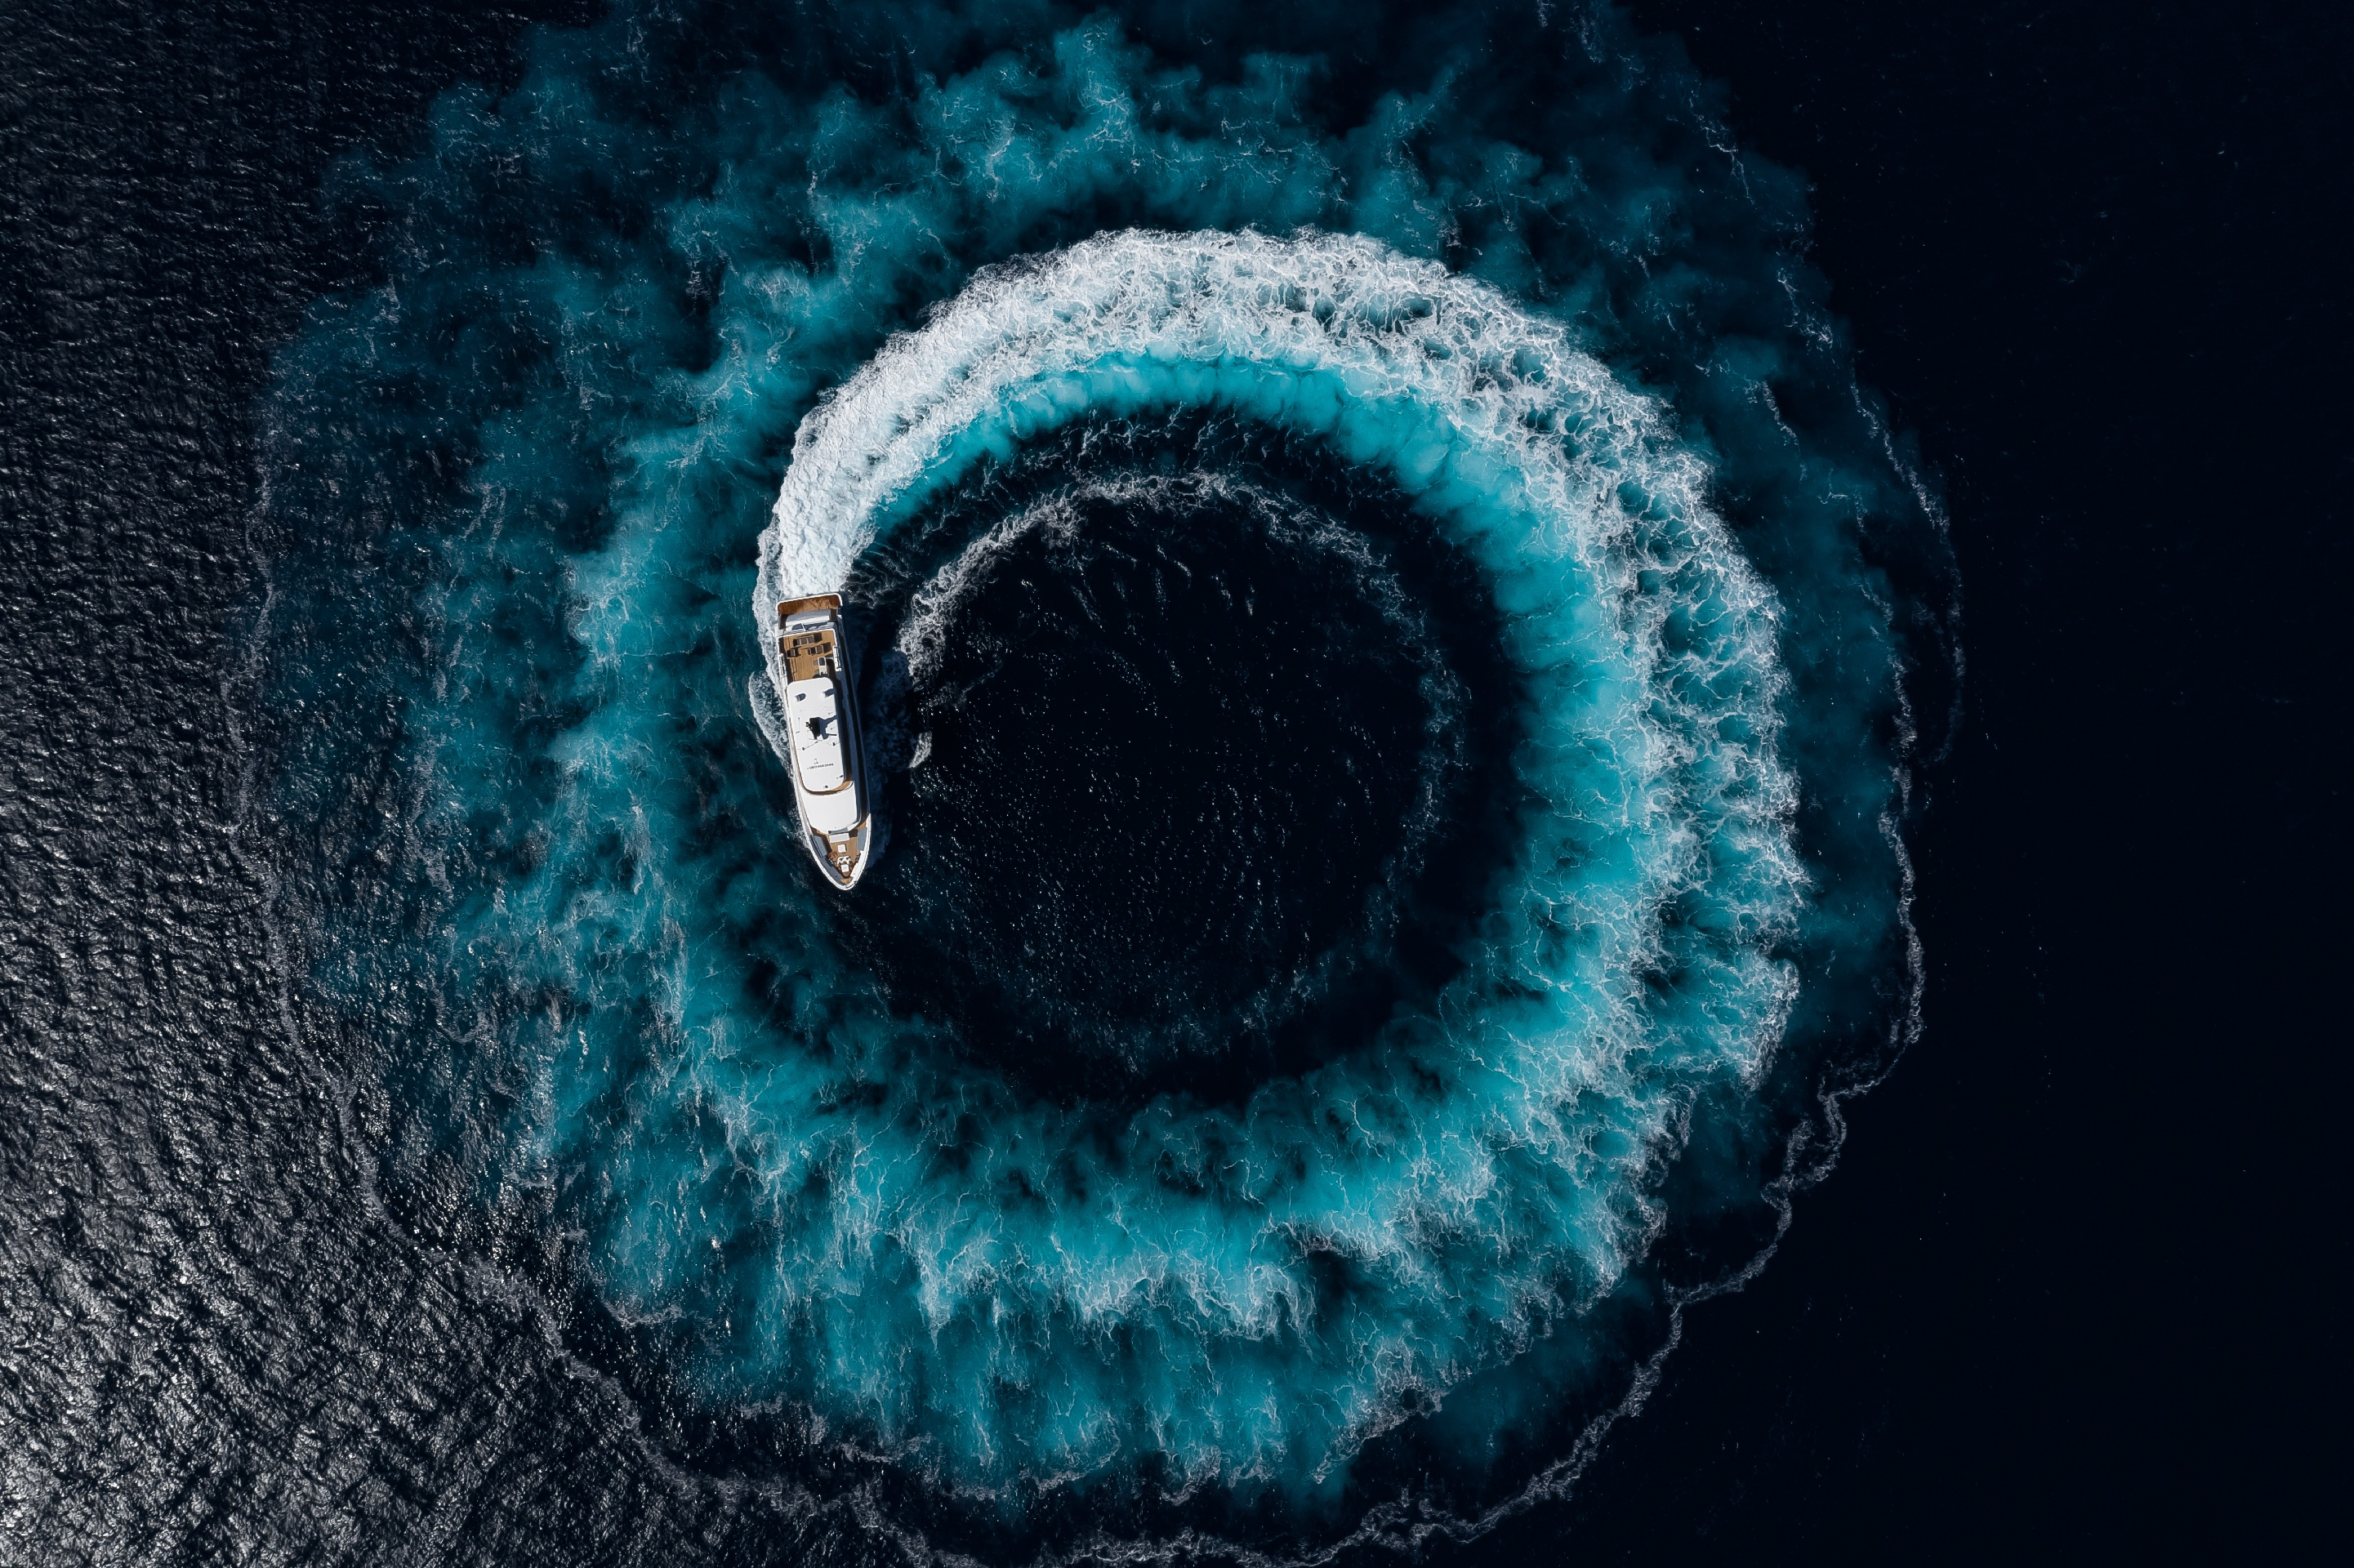 Expand your Horizons with Nomad Yachts